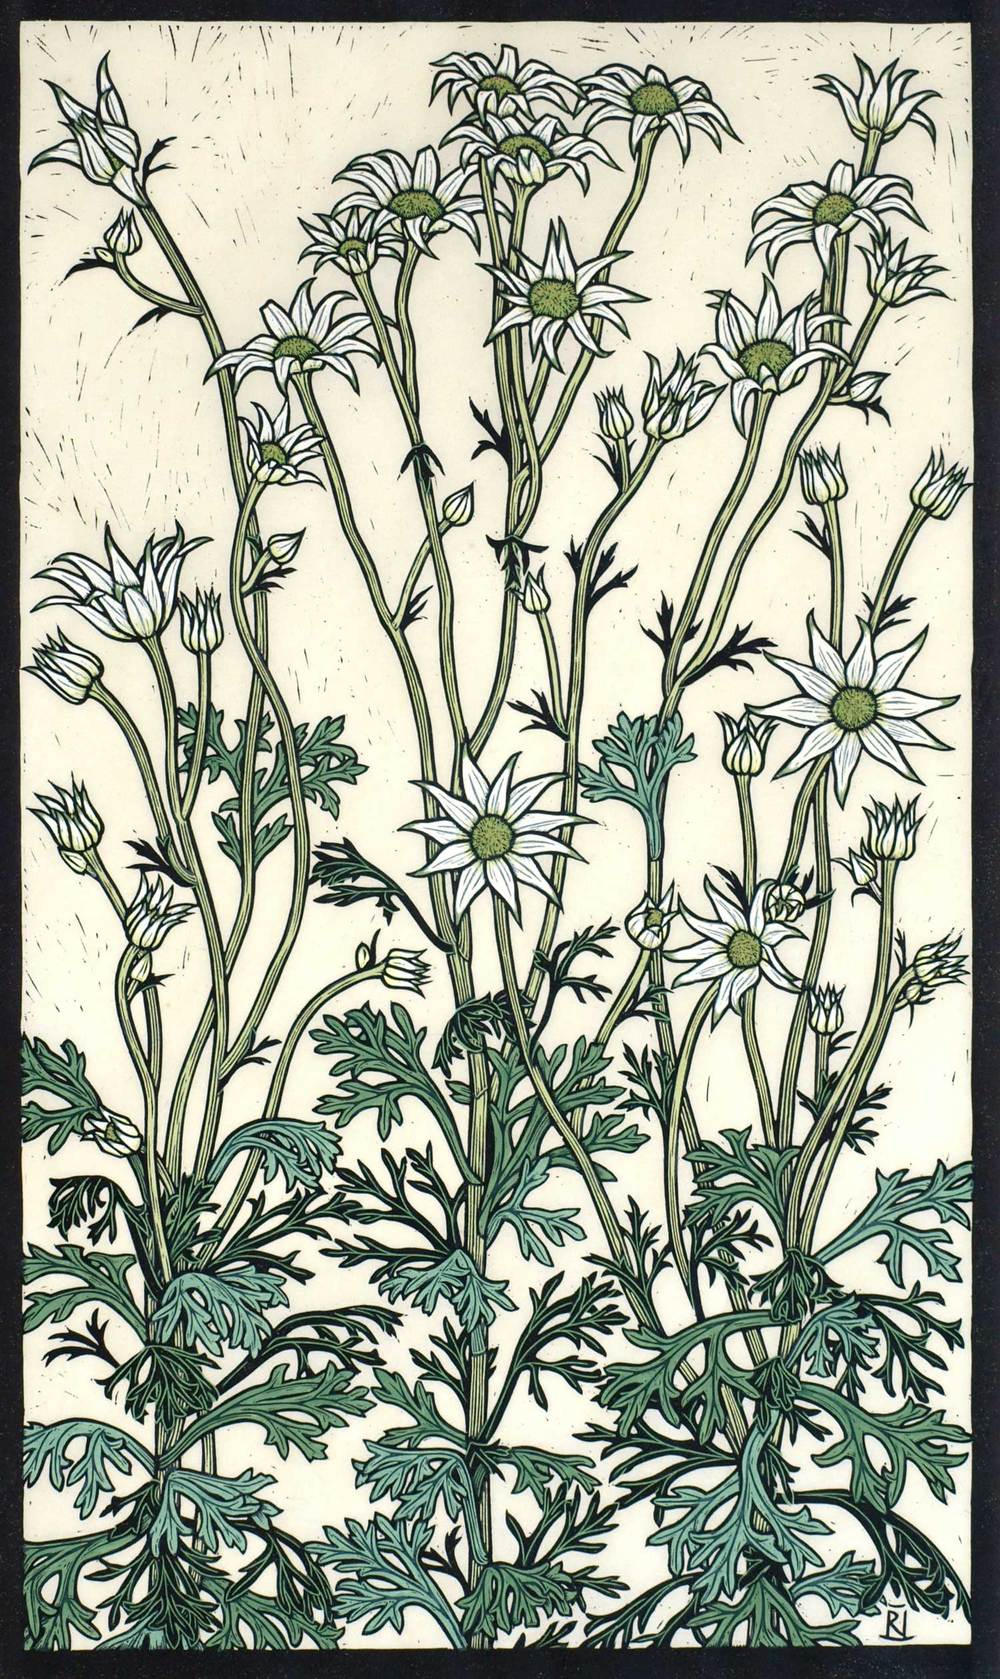 FLANNEL FLOWER 67 X 40 CM    EDITION OF 50 HAND COLOURED LINOCUT ON HANDMADE JAPANESE PAPER $1,250